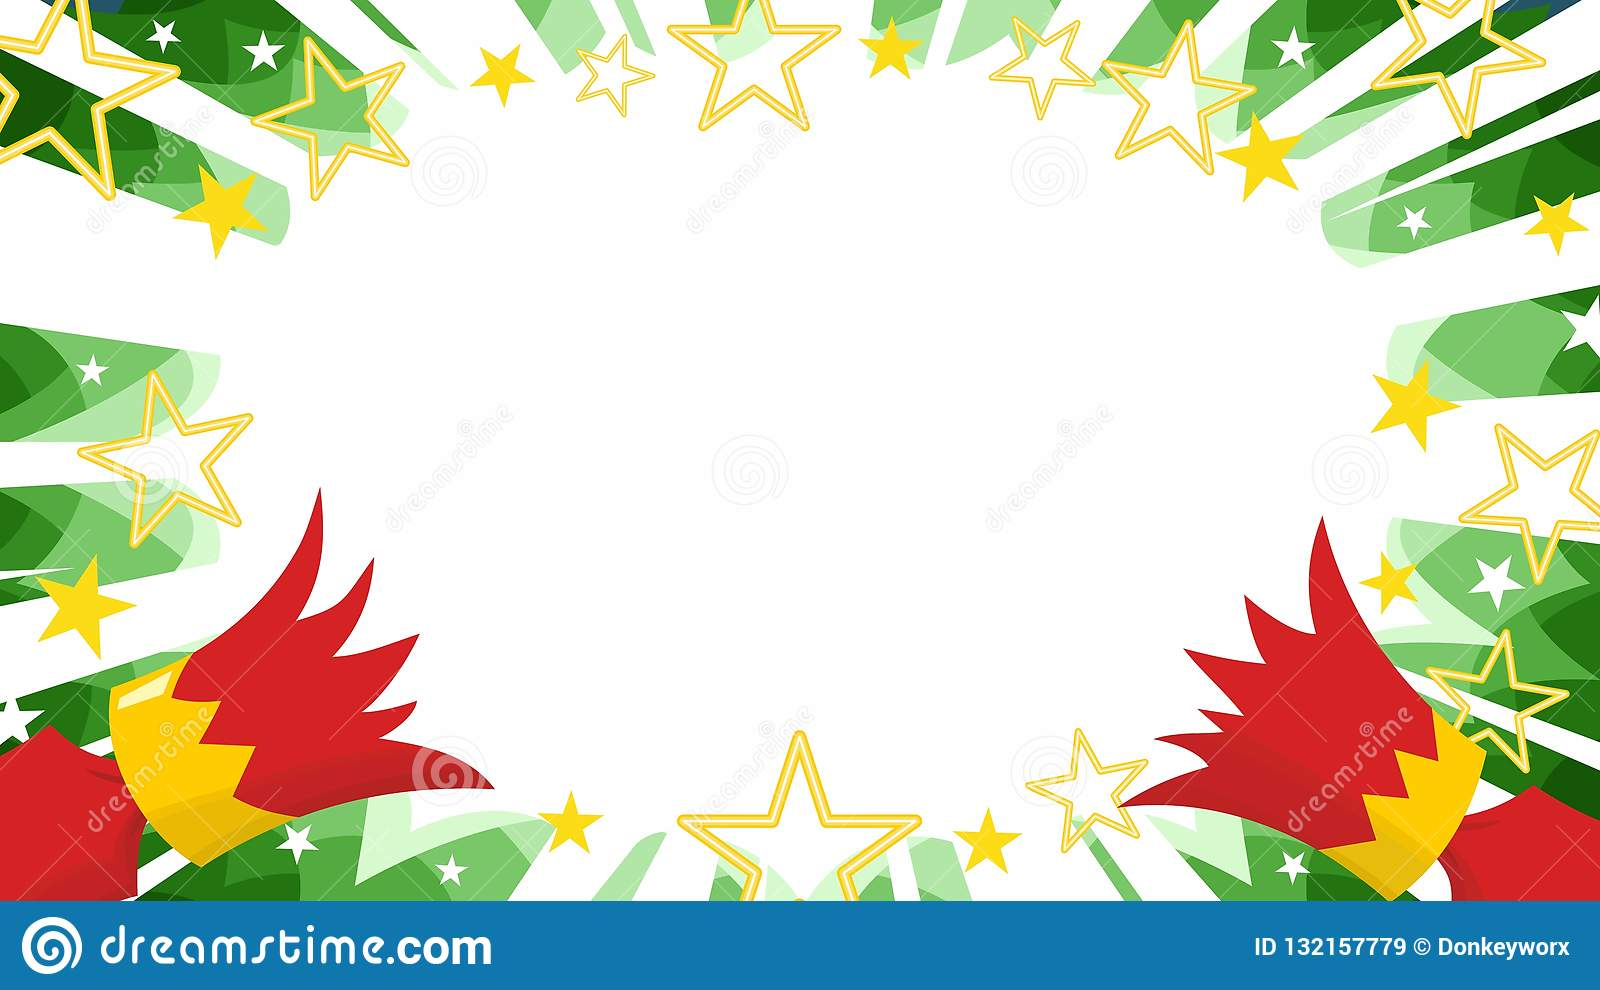 Christmas Cracker Vector.Christmas Cracker Pulled Apart On Manga Green Starburst